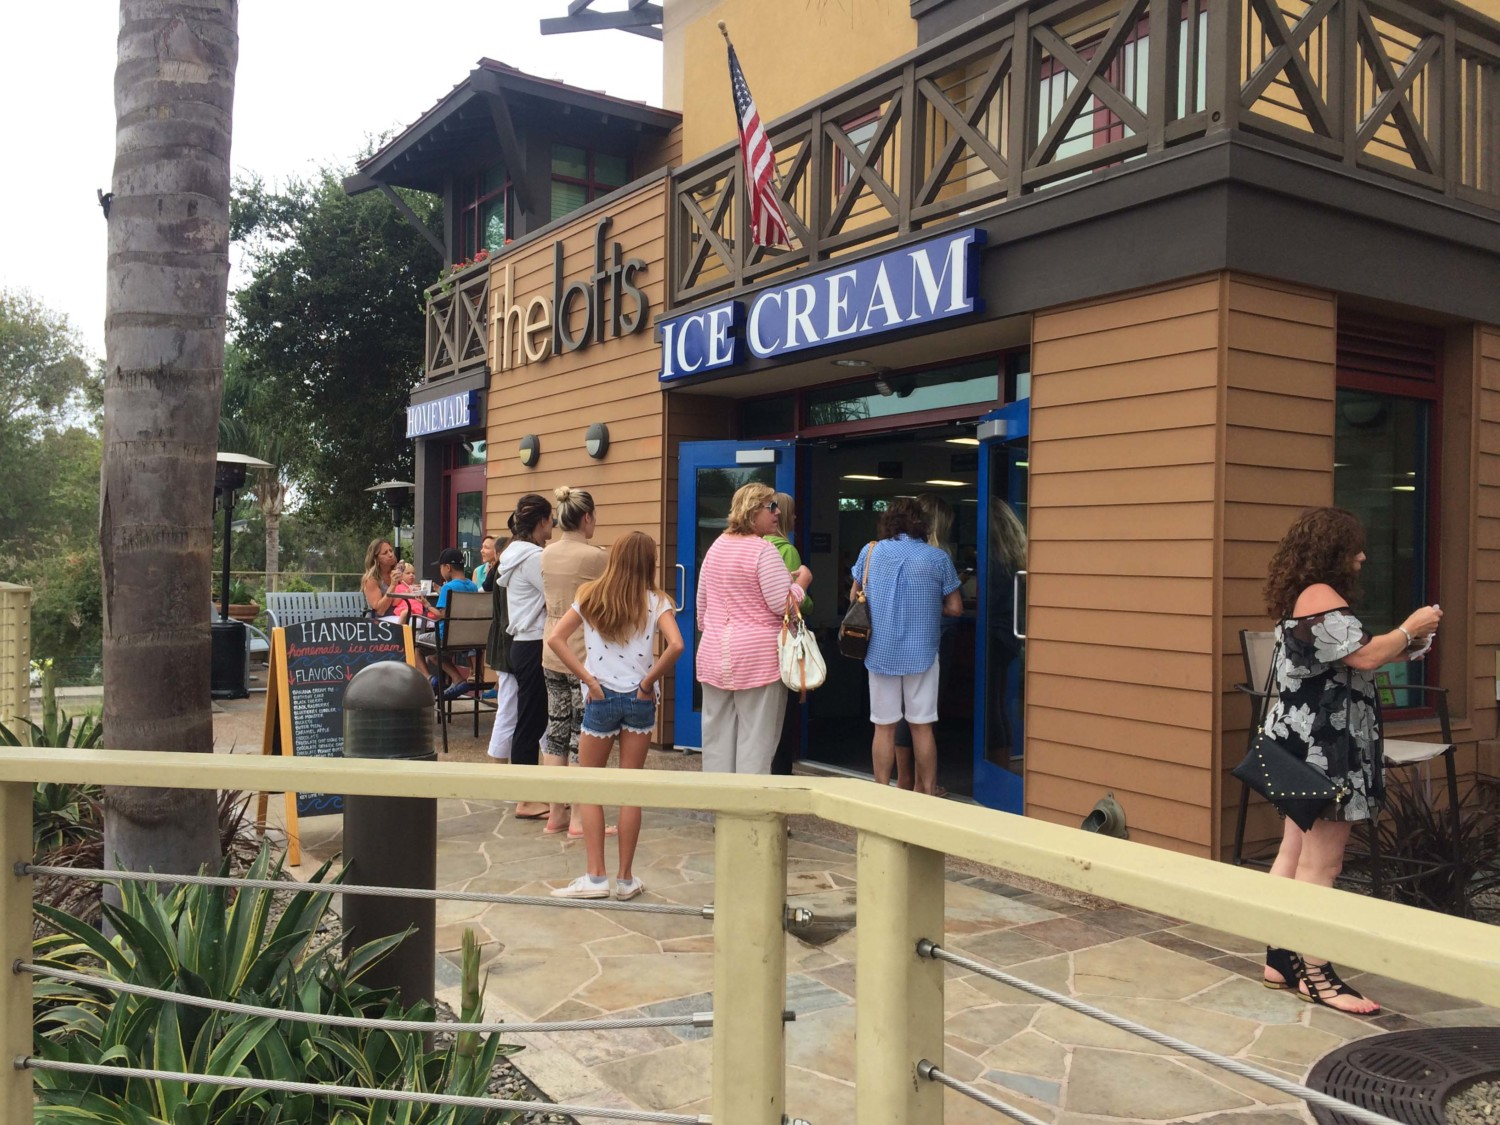 Ice cream shop's sweet success leaves bad taste with some neighbors